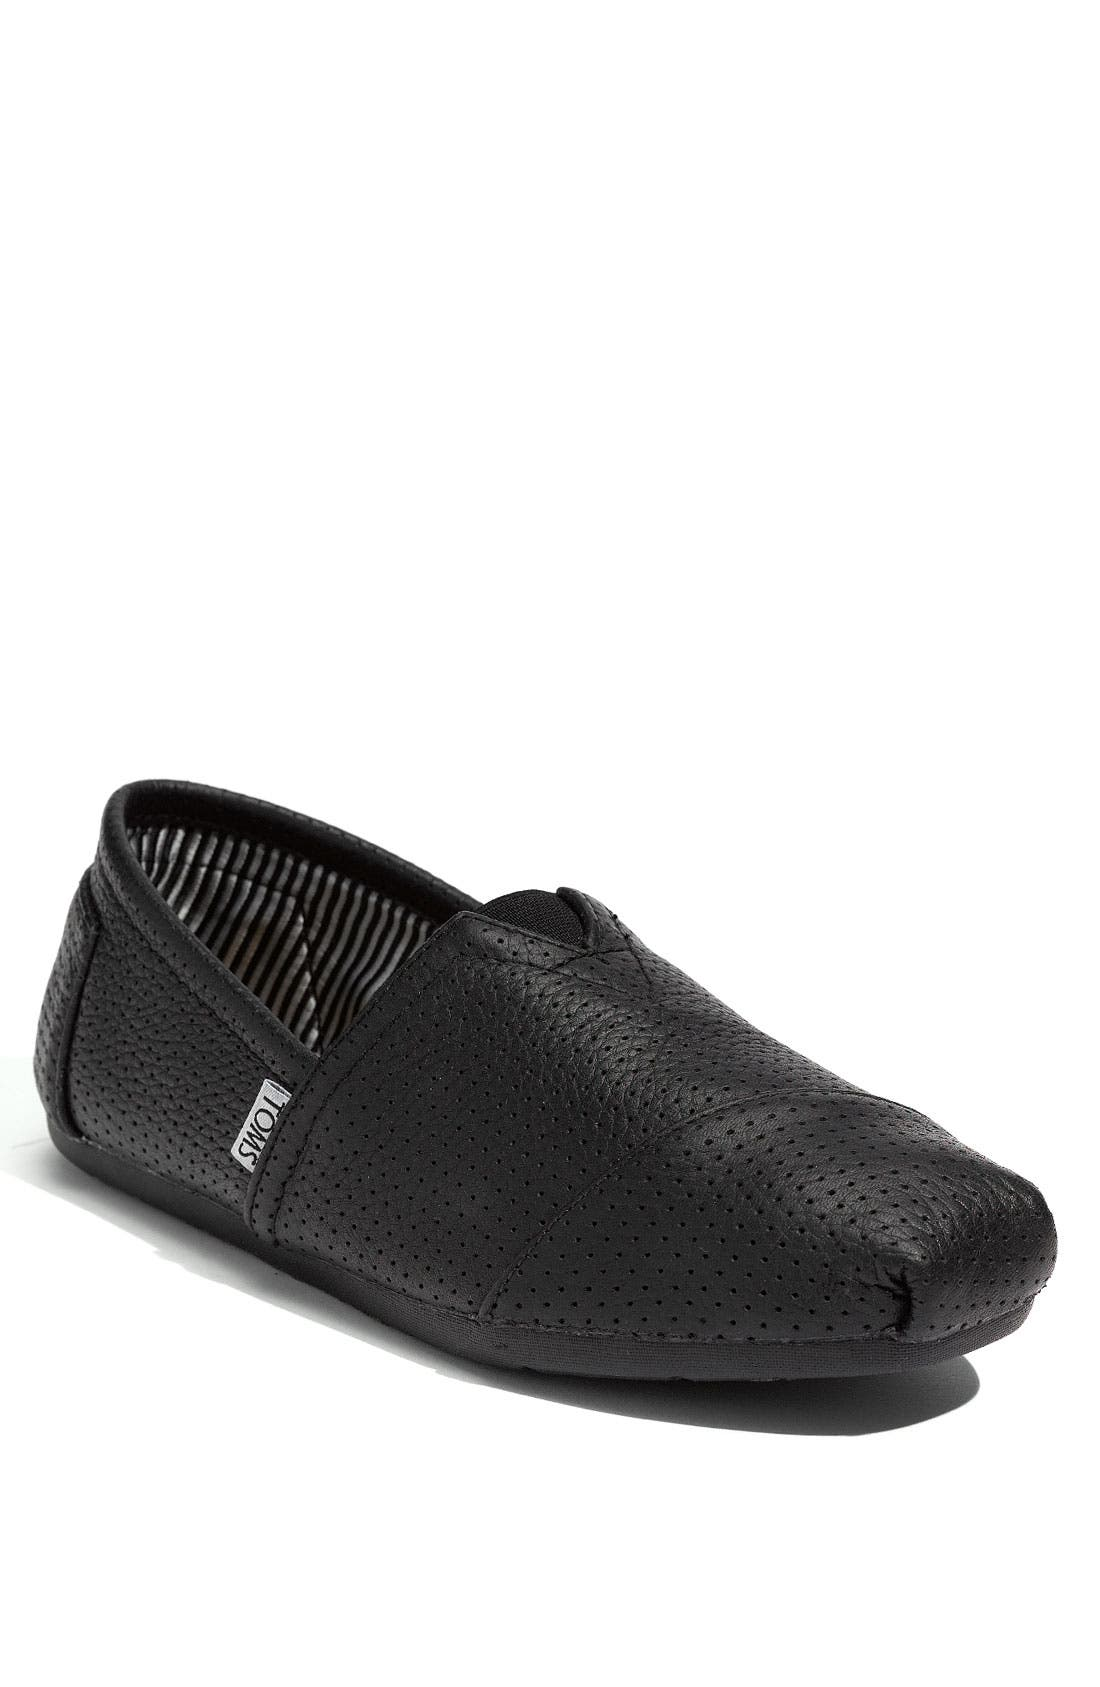 Alternate Image 1 Selected - TOMS Perforated Leather Slip-On (Men)